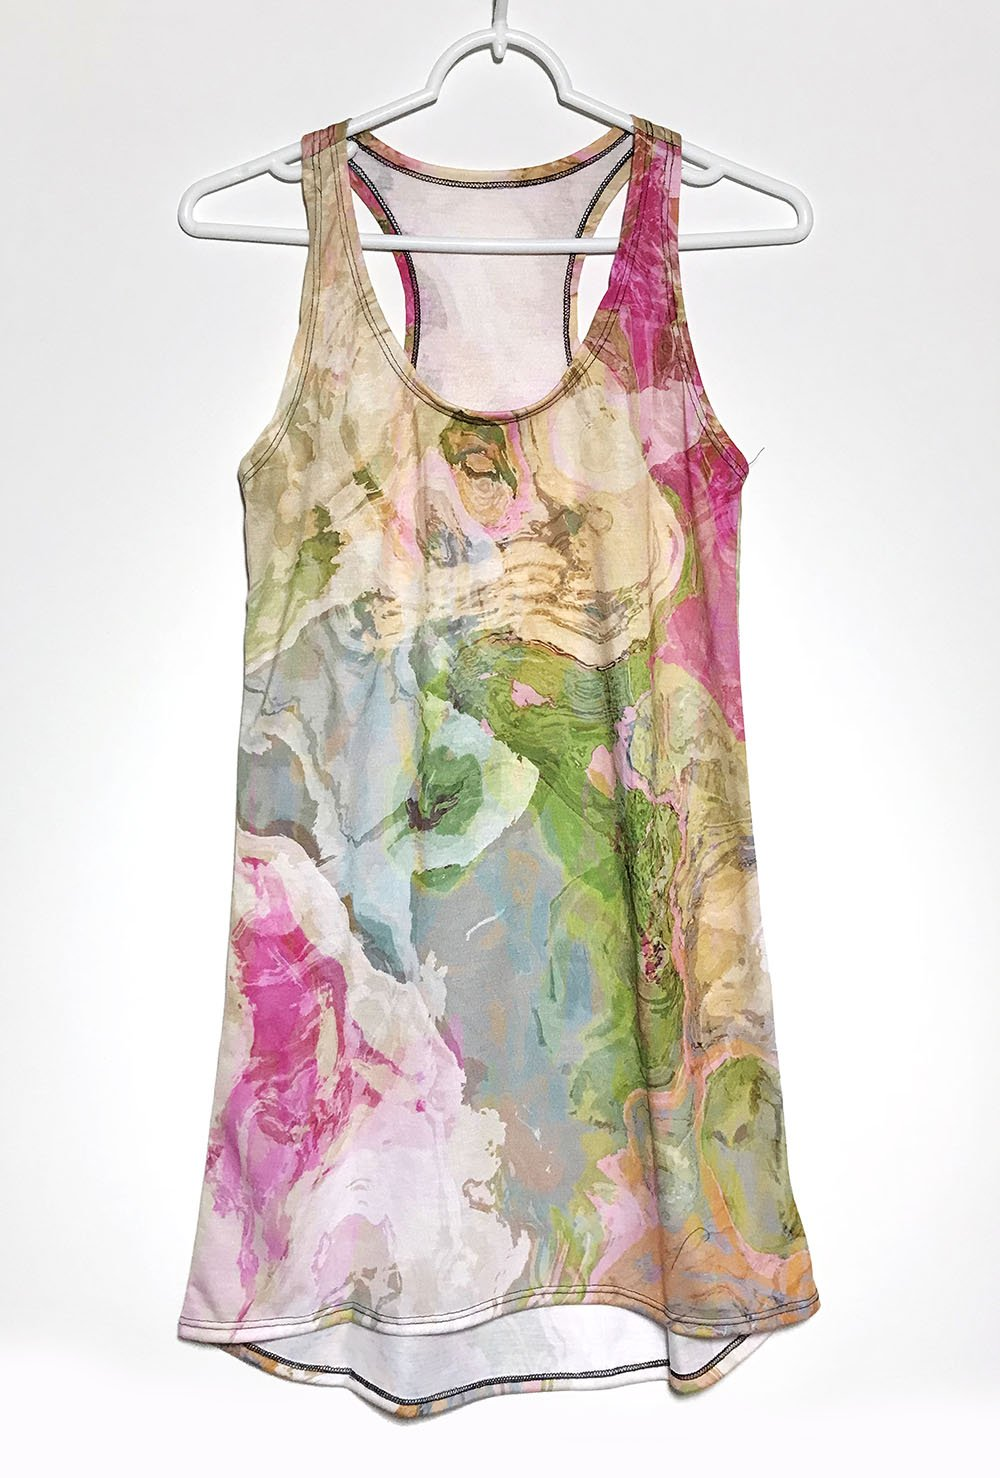 Racerback Mini Dress with wearable abstract art in pink, green and blue, Dreamgirl